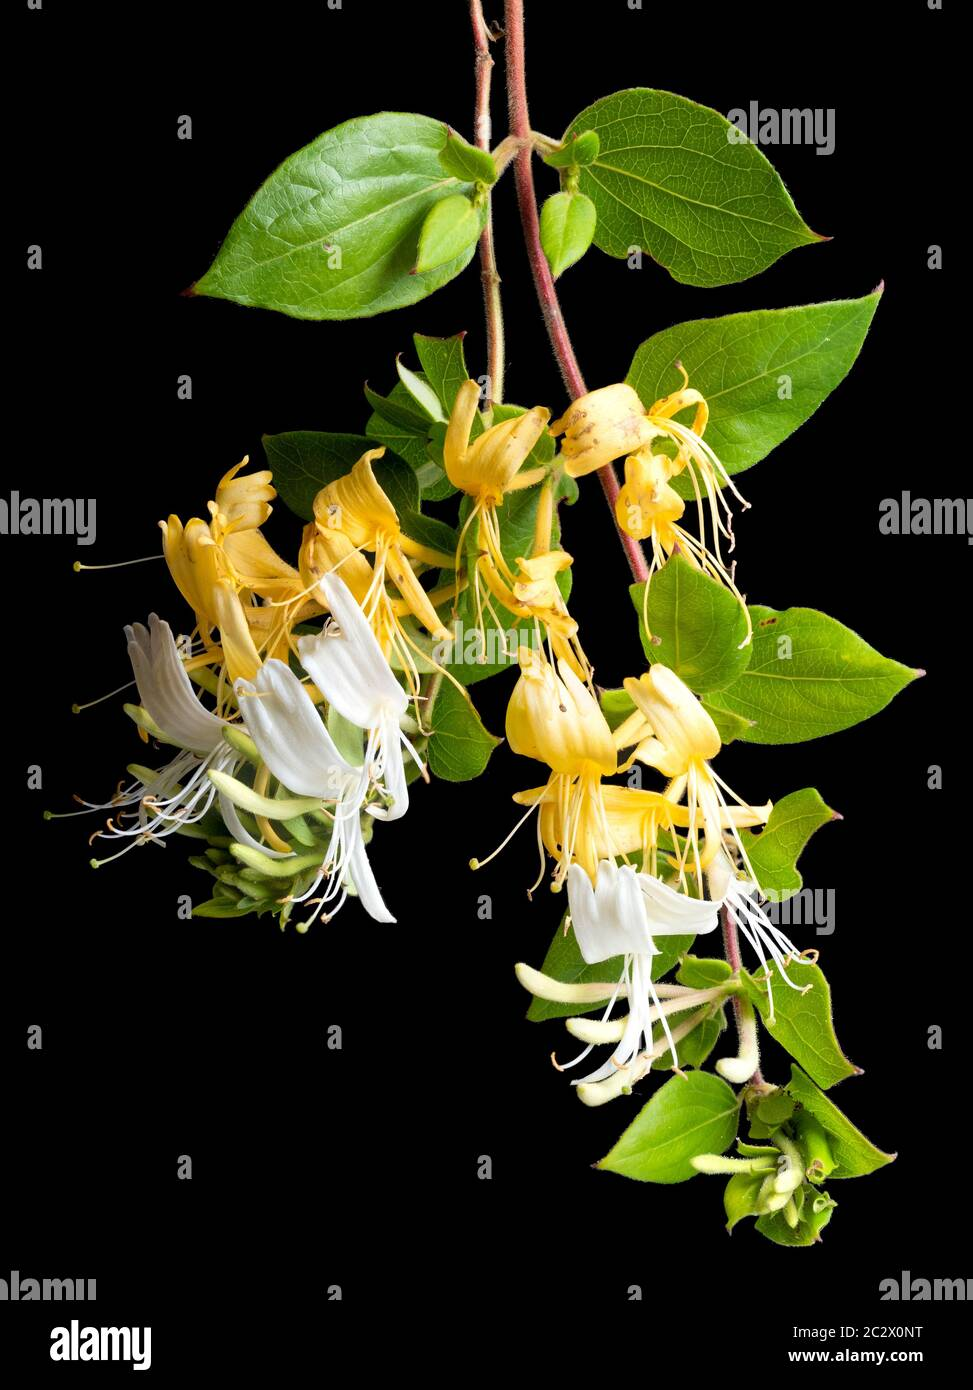 Yellow fertilised and white unfertilised flowers of the evergreen hardy climber, Lonicera japonica 'Hall's Prolific',Japanese Honeysuckle Stock Photo